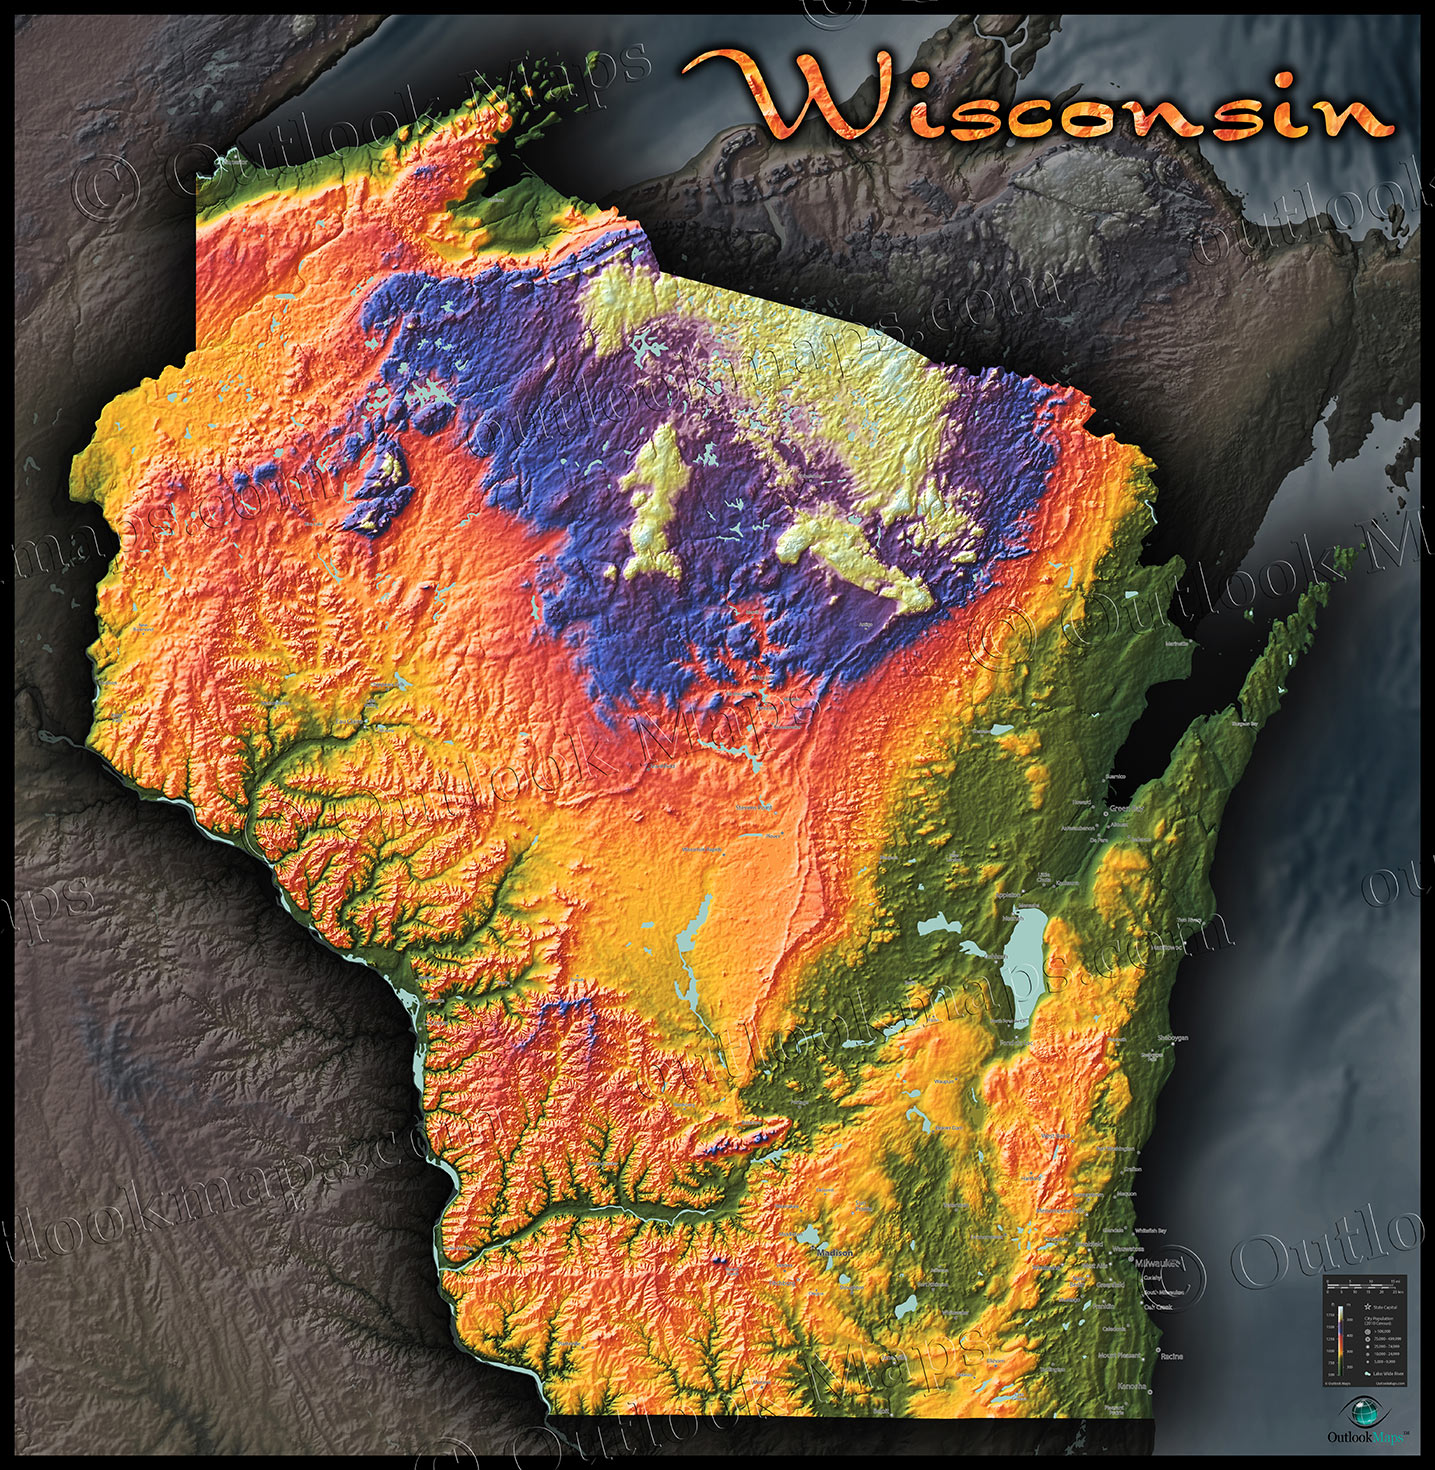 Wisconsin Topography Map | Colorful 3D Physical Features